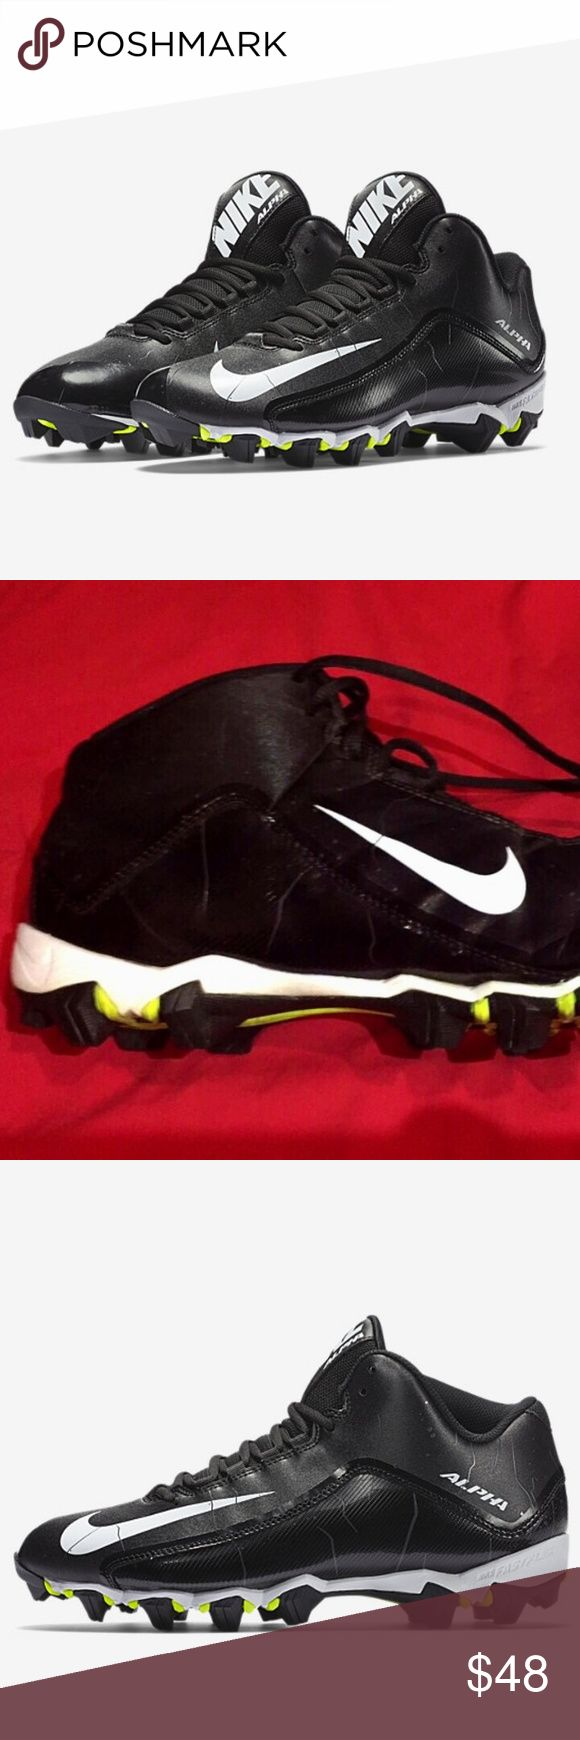 Nike alpha shark men's shoes size  13 The Nike Alpha Shark 2 3/4 Men's Football Cleat features a sleek, lightweight upper and aggressive cleat configuration so you can perform at top speed during practice and play. Lightweight, synthetic leather upper with comfort collar for performance and a great fit  Full-length Phylon midsole for responsive cushioning Aggressive Shark rubber outsole with Nike fast-flex for natural performance and speed Used but refer to pictures for condition Excellent…